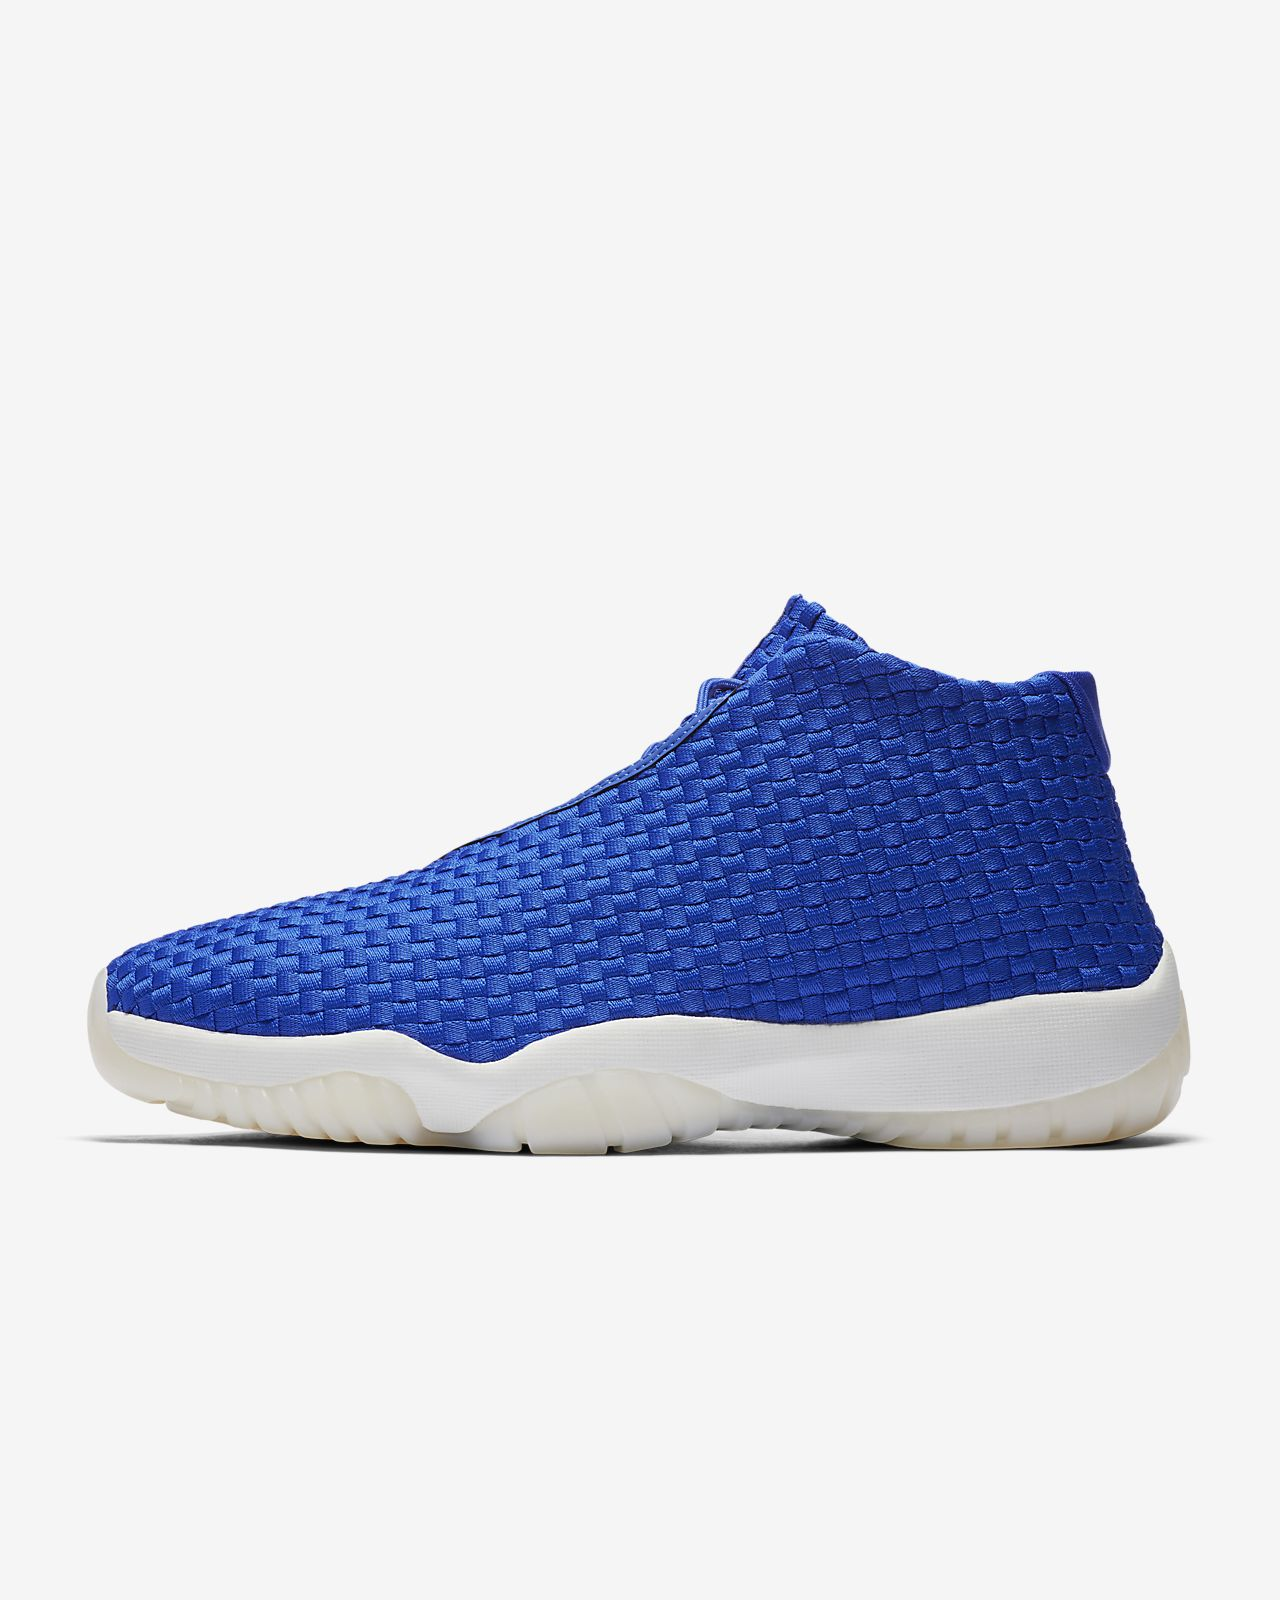 huge selection of 8fadd a8972 Men s Shoe. Air Jordan Future